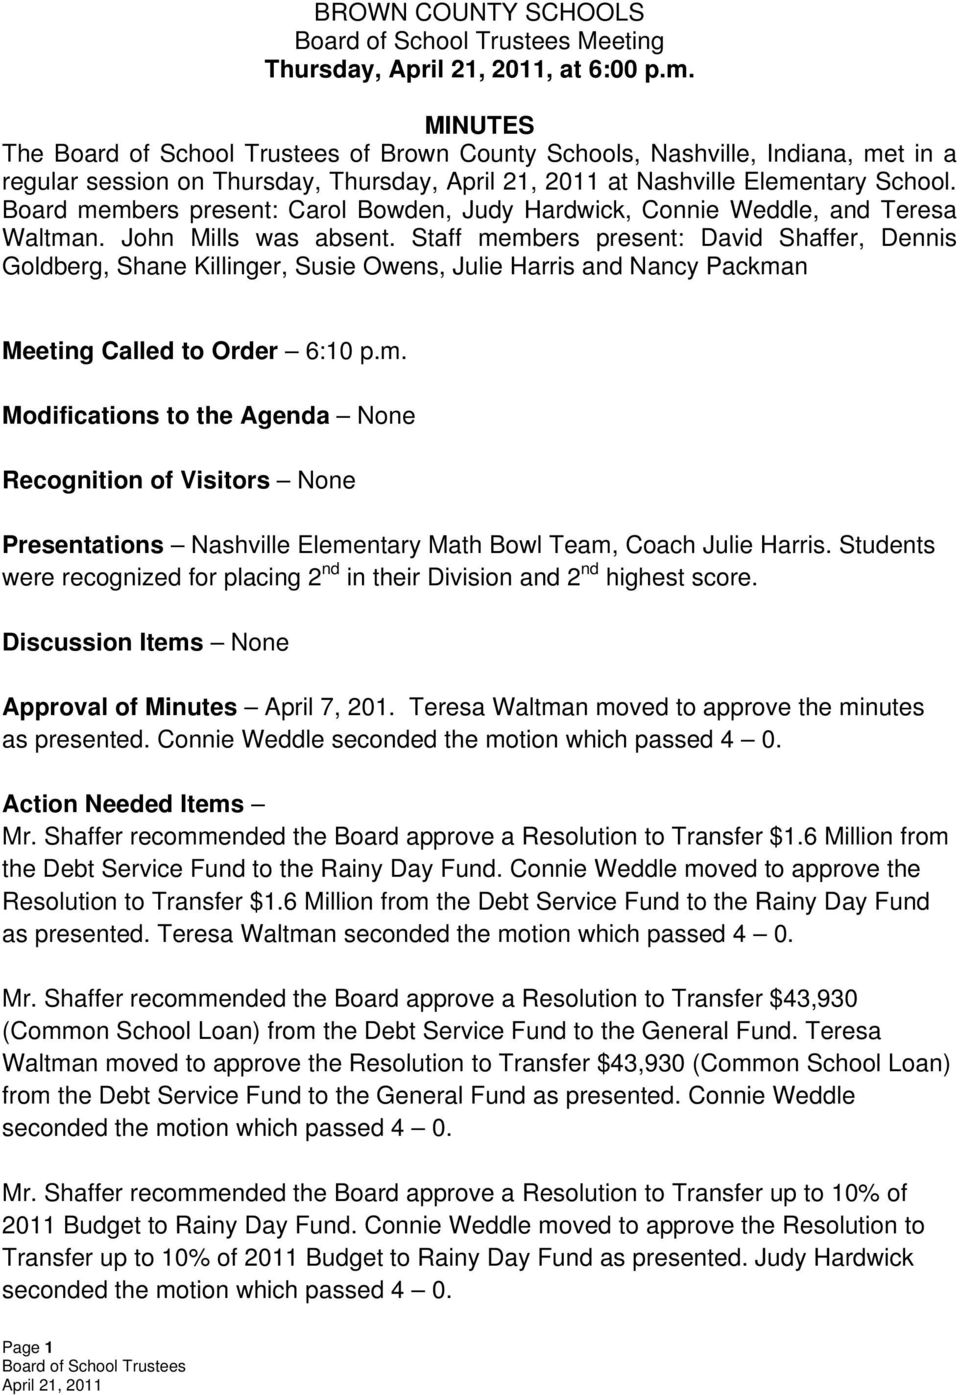 Staff members present: David Shaffer, Dennis Goldberg, Shane Killinger, Susie Owens, Julie Harris and Nancy Packman Meeting Called to Order 6:10 p.m. Modifications to the Agenda None Recognition of Visitors None Presentations Nashville Elementary Math Bowl Team, Coach Julie Harris.